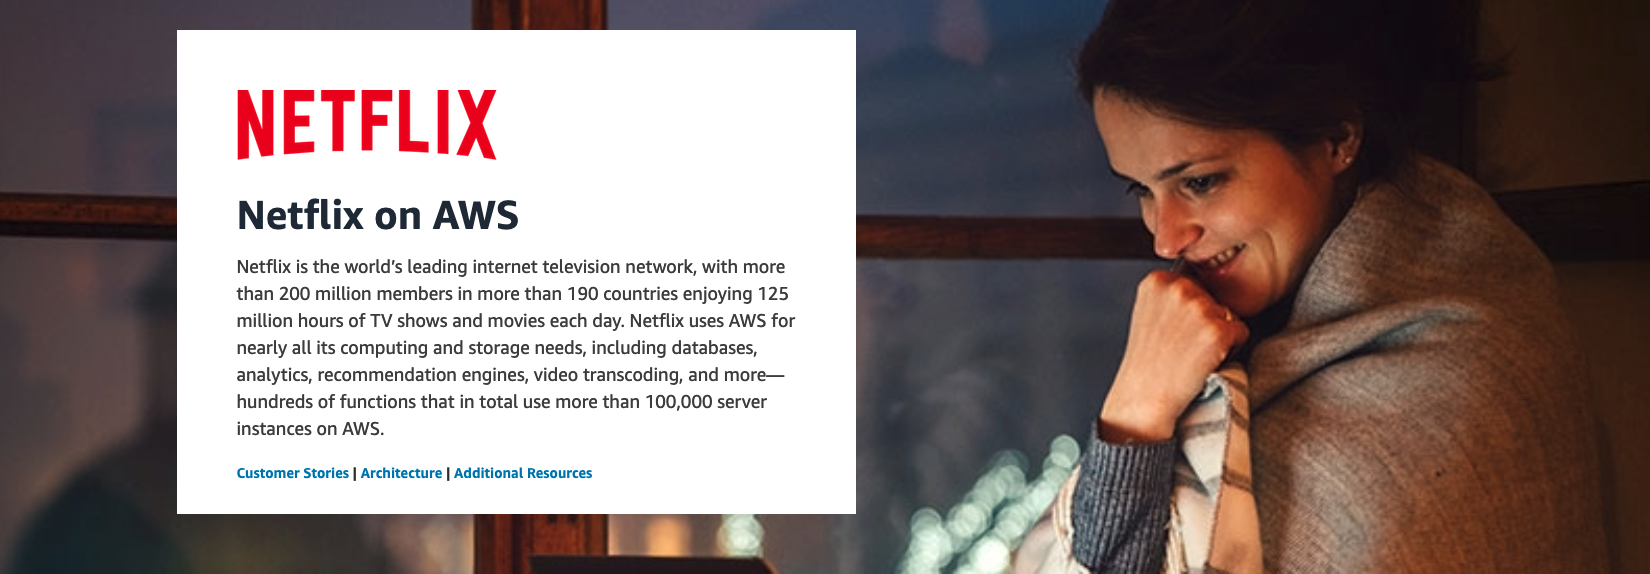 Netflix on AWS Innovator page preview